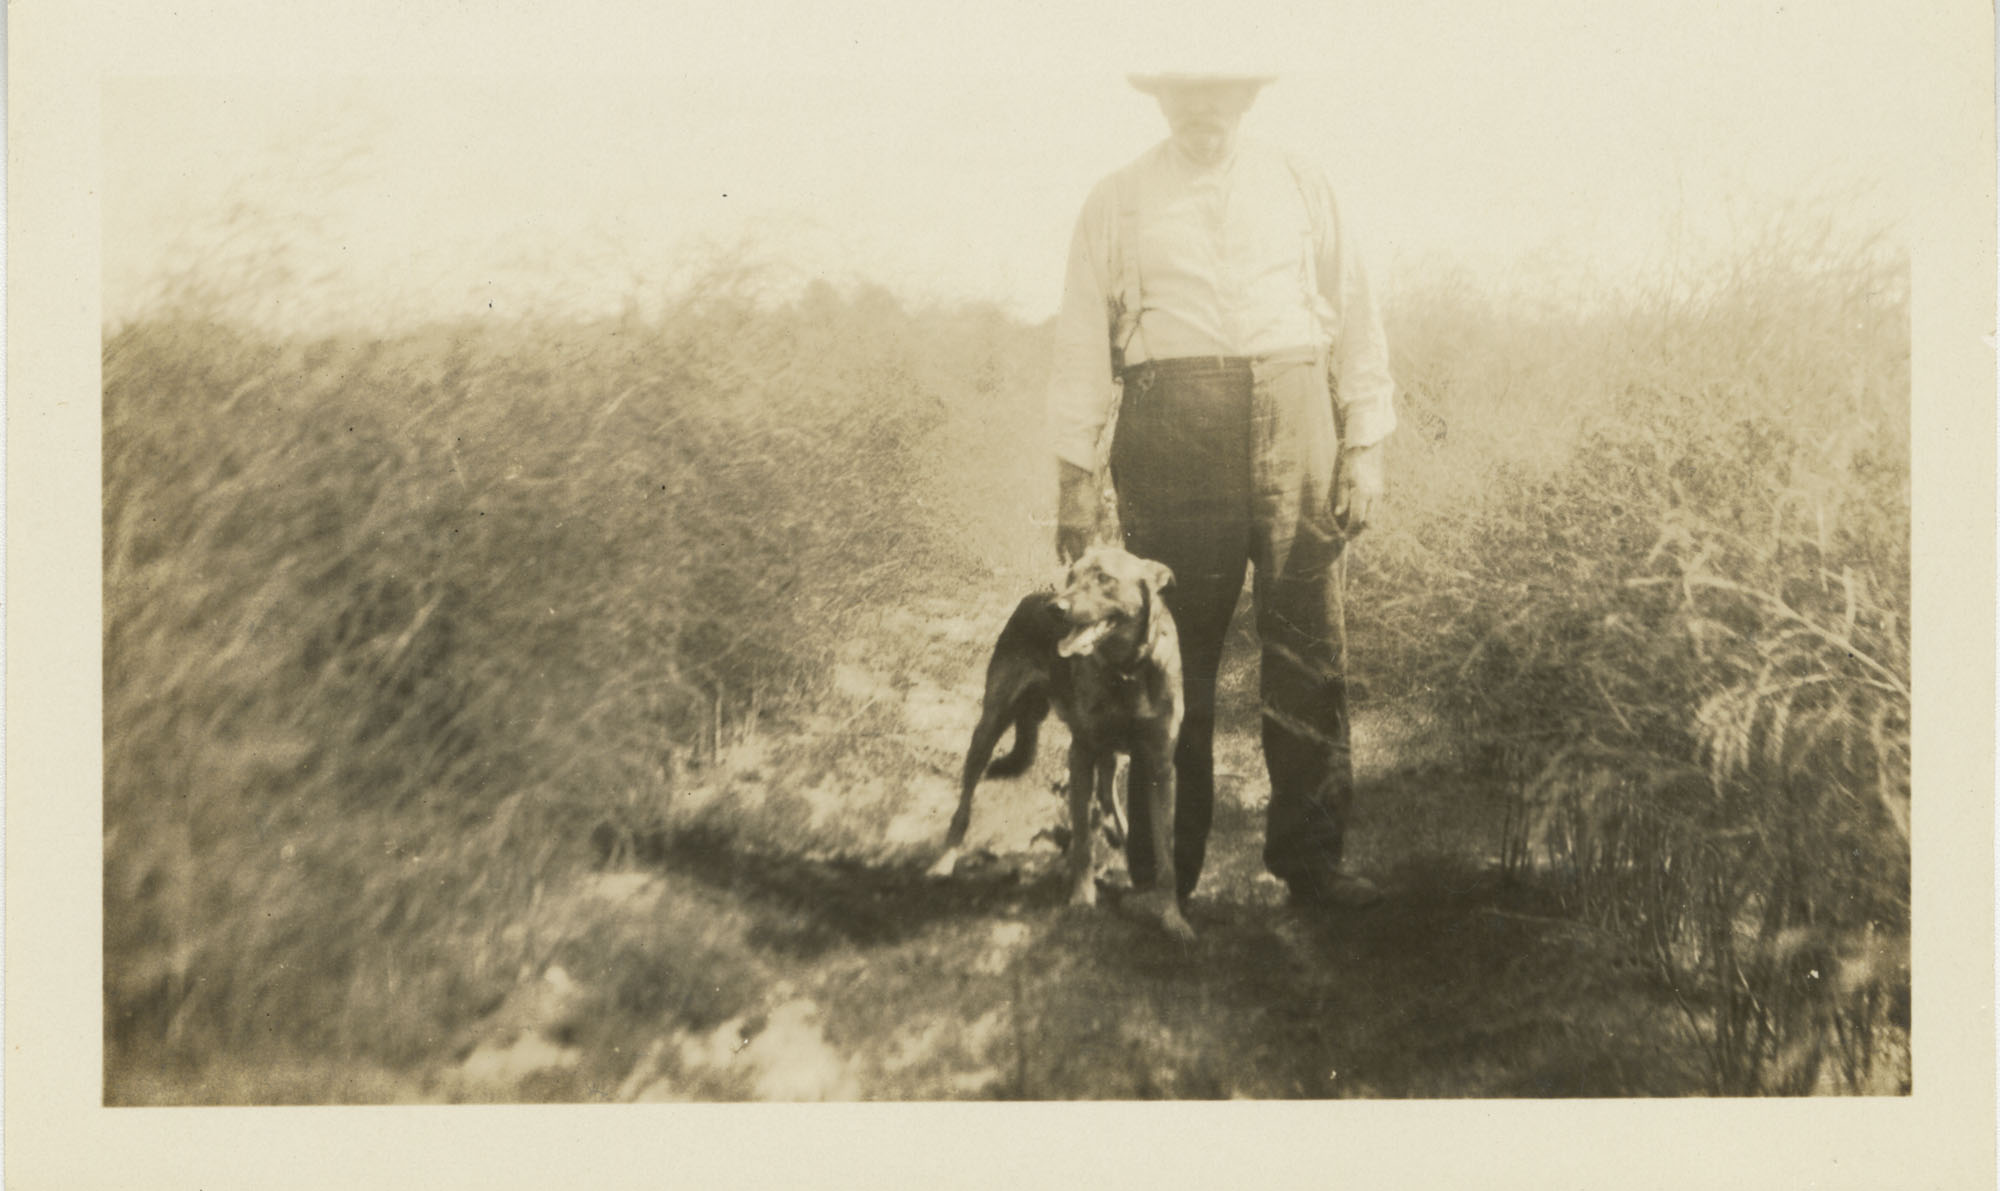 J.R. Scott in Asparagus Field with Dog